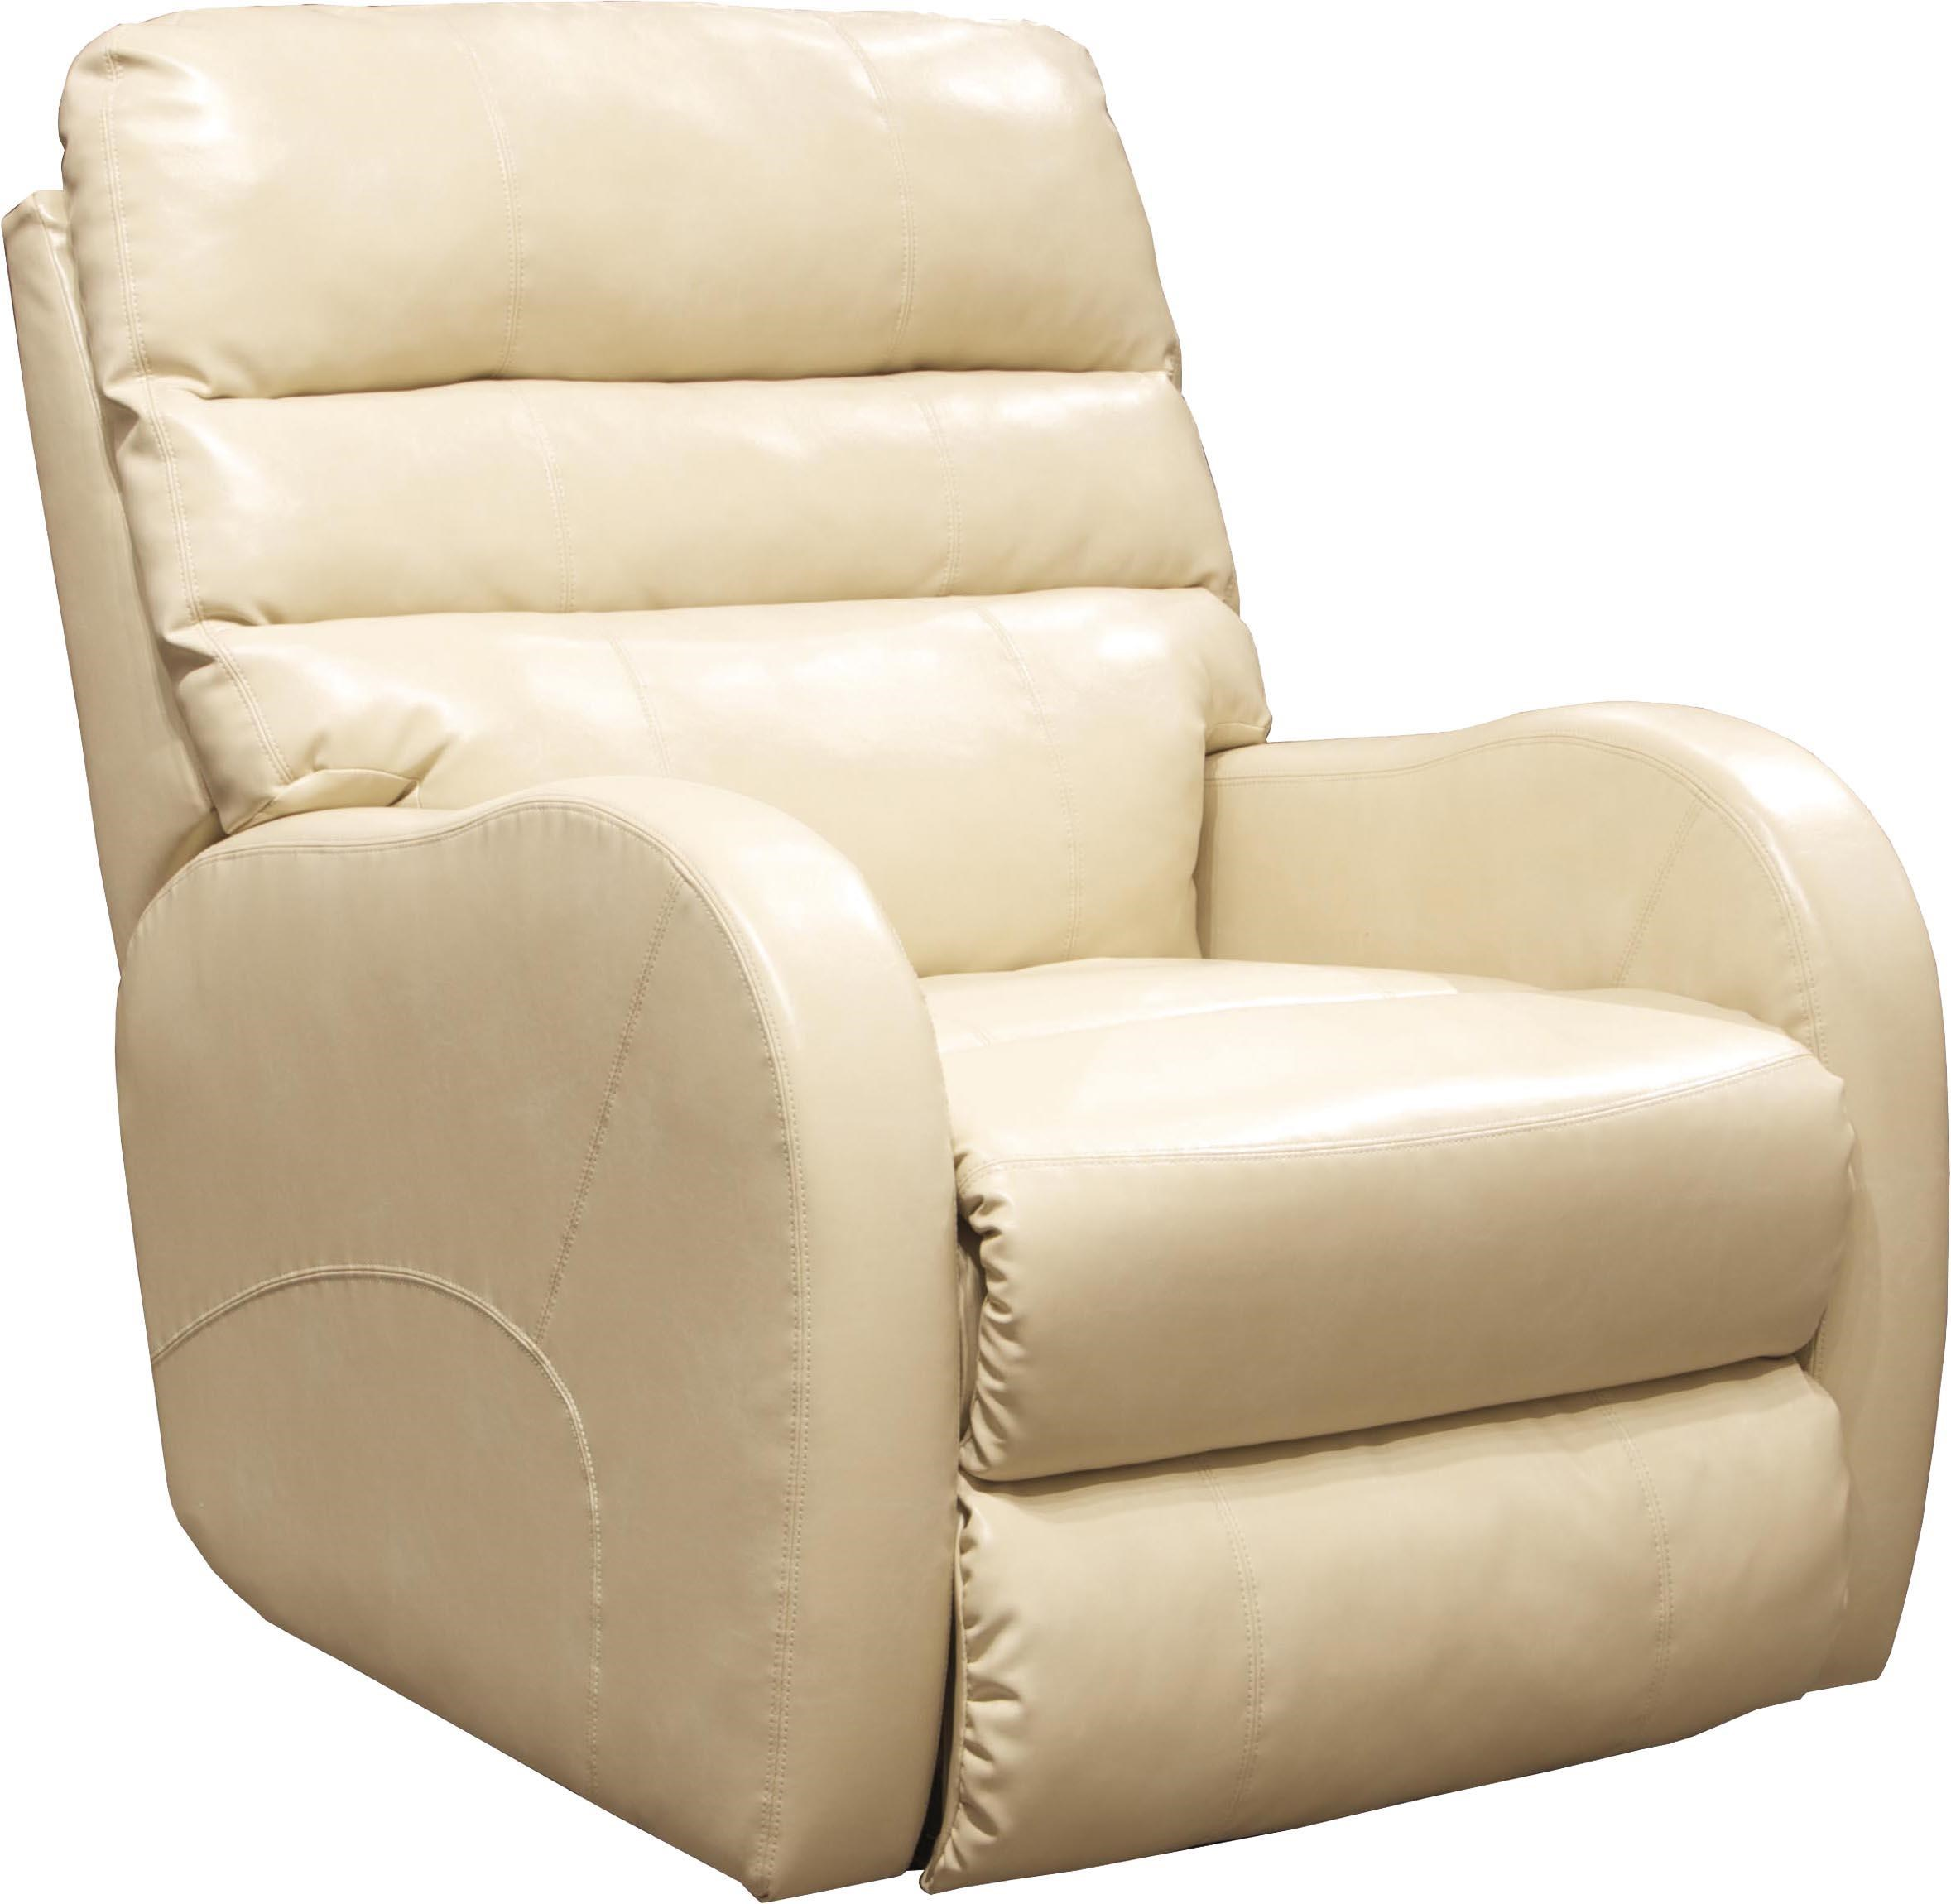 Catnapper Searcy Casual Power Wall Recliner with USB Port  sc 1 st  Lindyu0027s Furniture Company & Catnapper Searcy Casual Power Wall Recliner with USB Port ... islam-shia.org